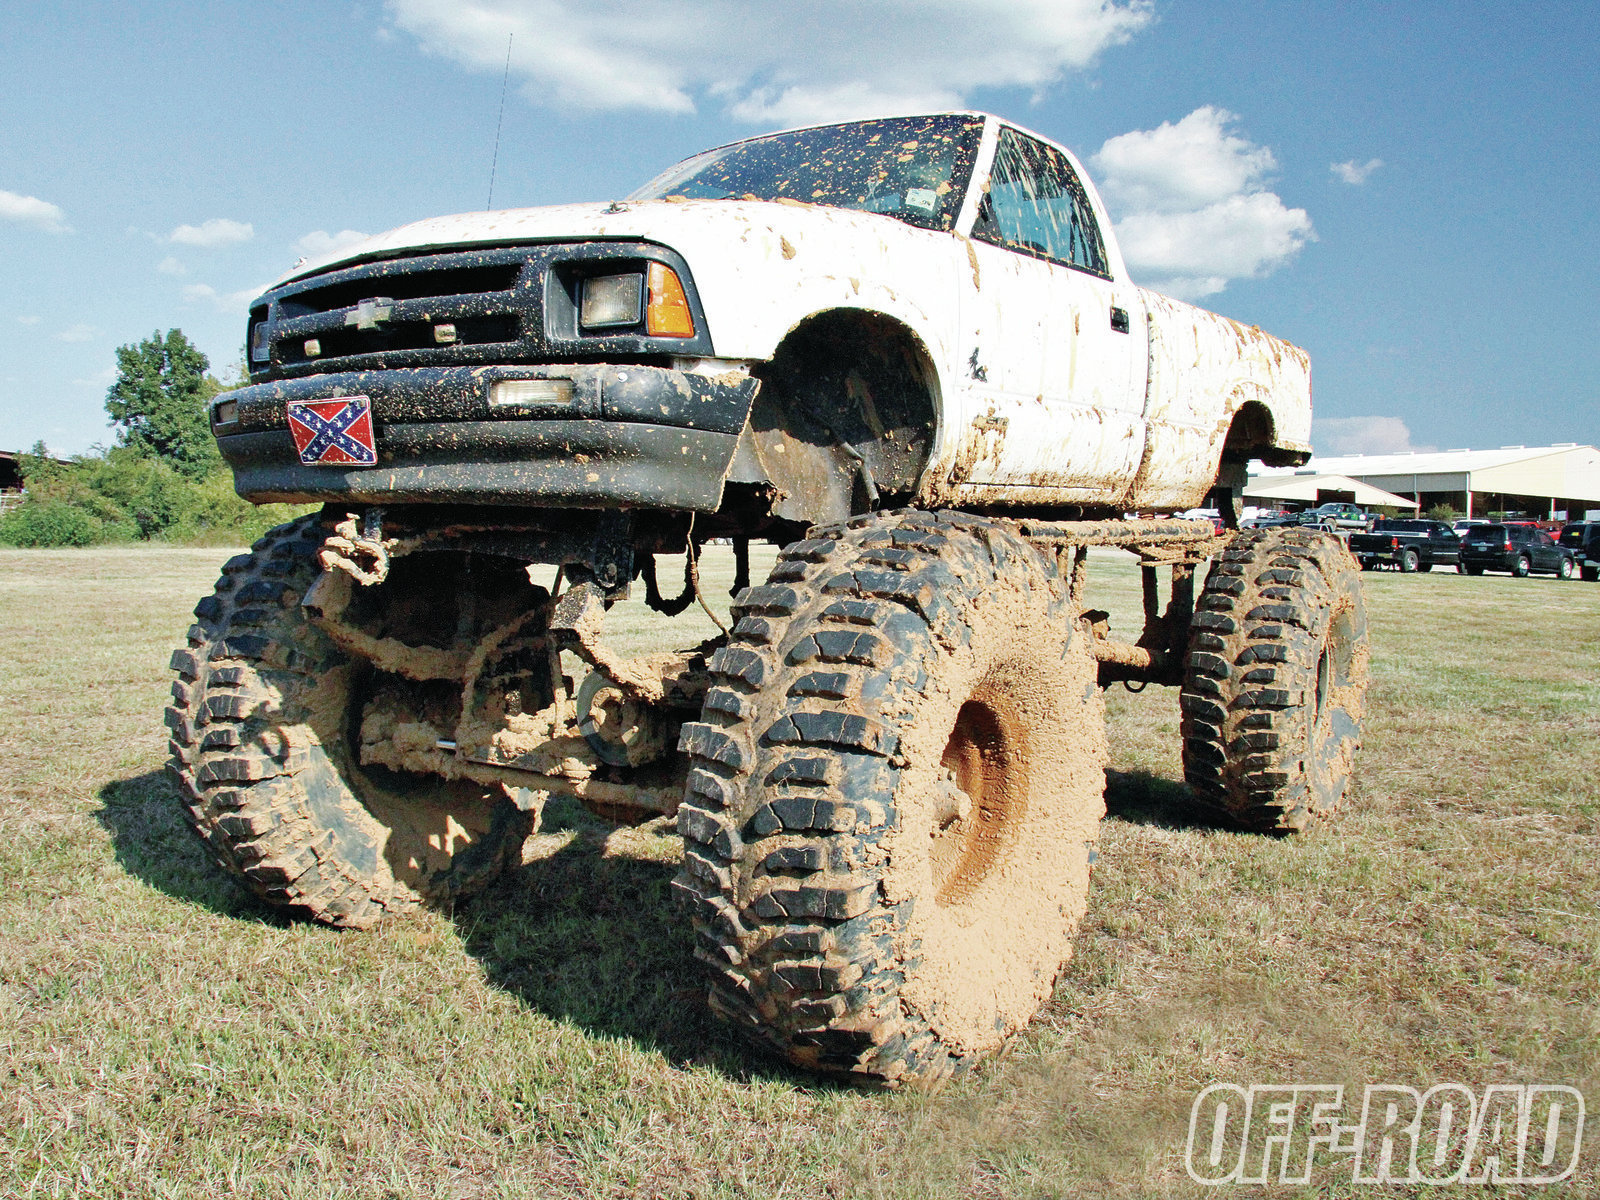 Chevy Mud Trucks Wallpaper Images & Pictures - Becuo HTML code